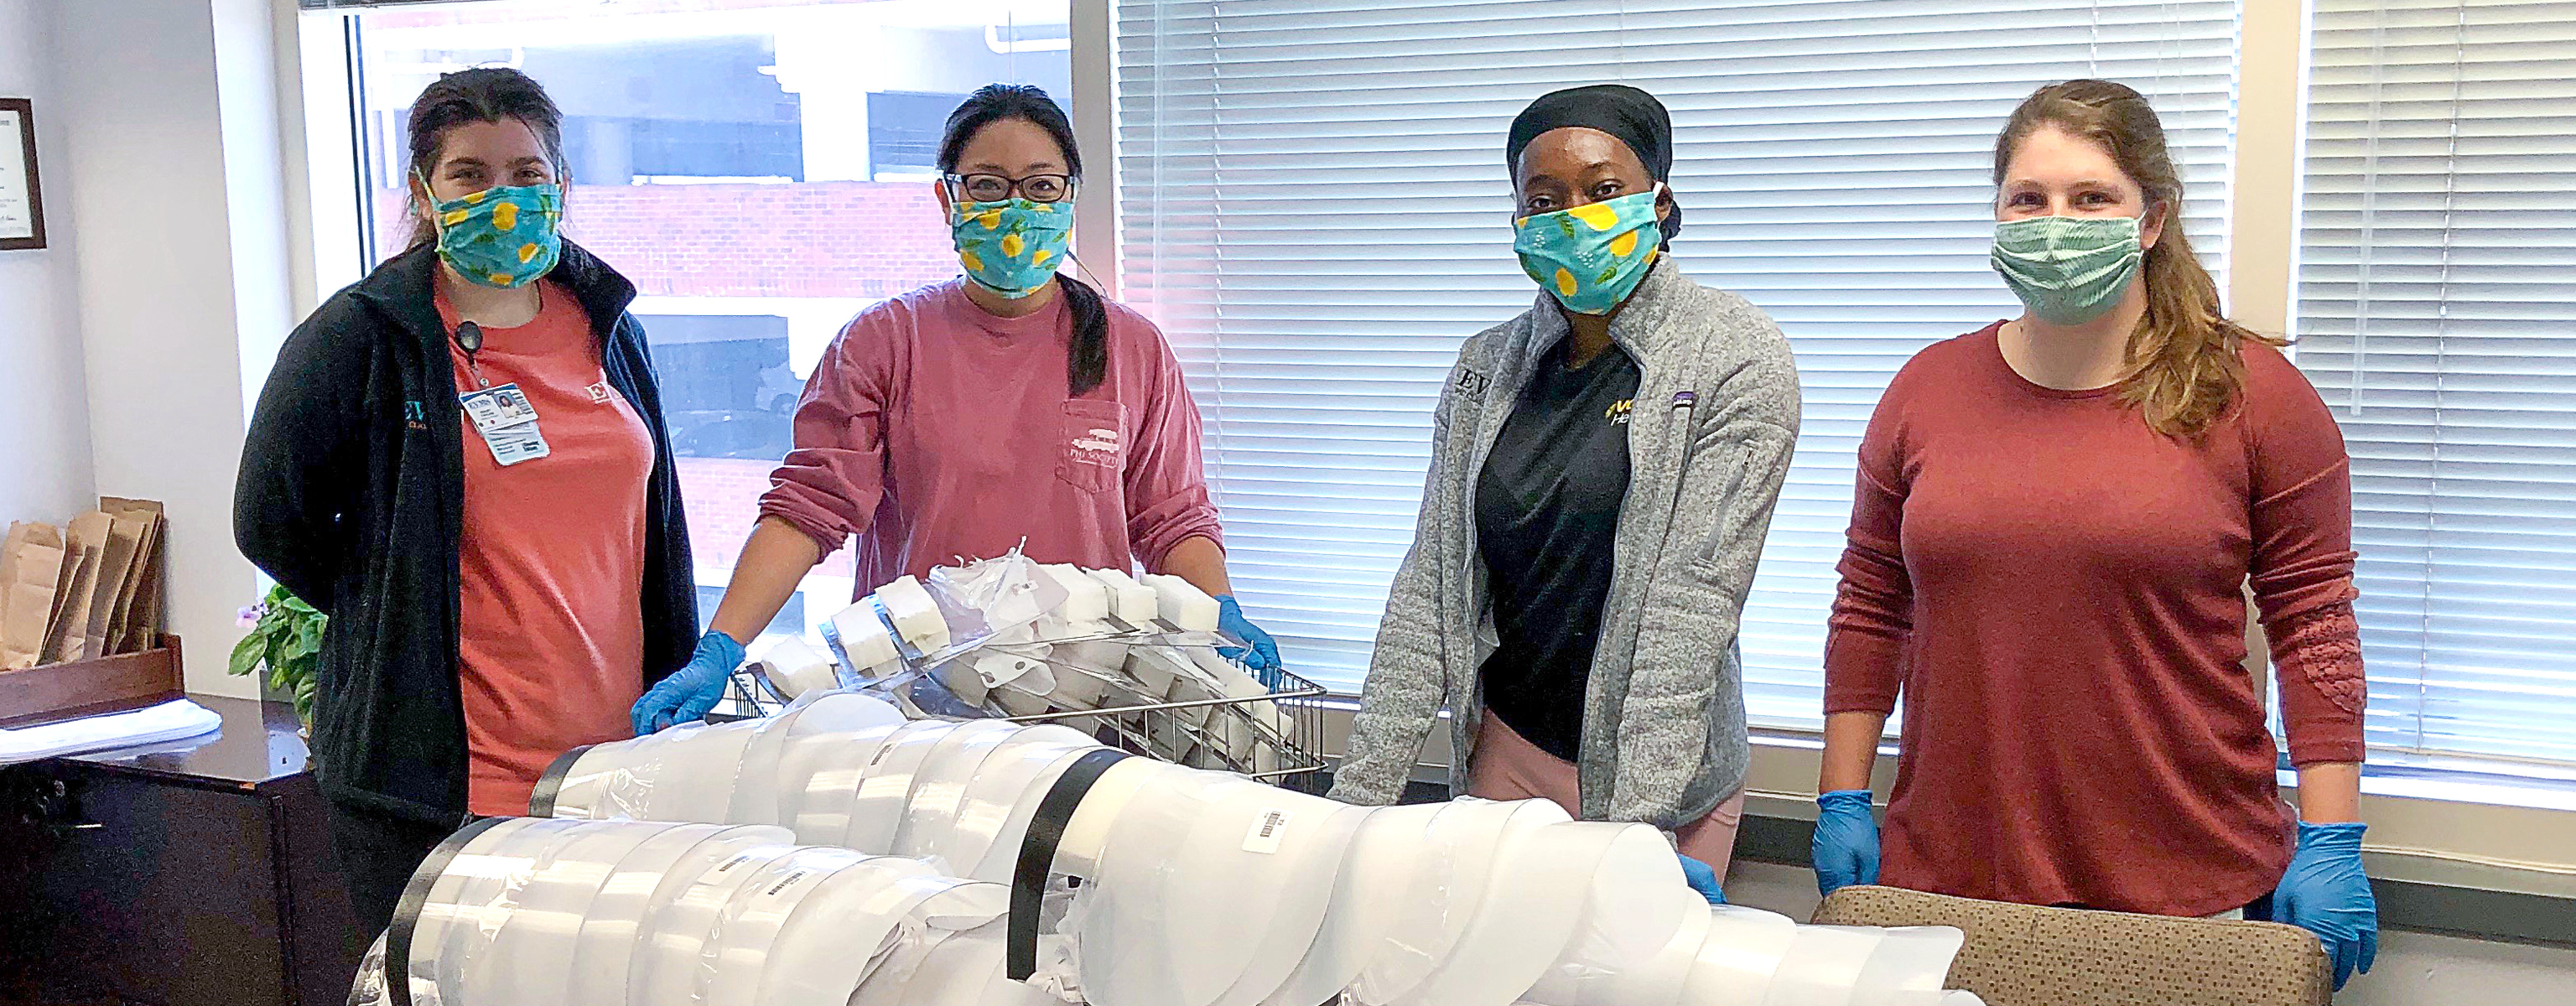 Four young women stand behind a desk covered in assembled face shields and face shield parts.